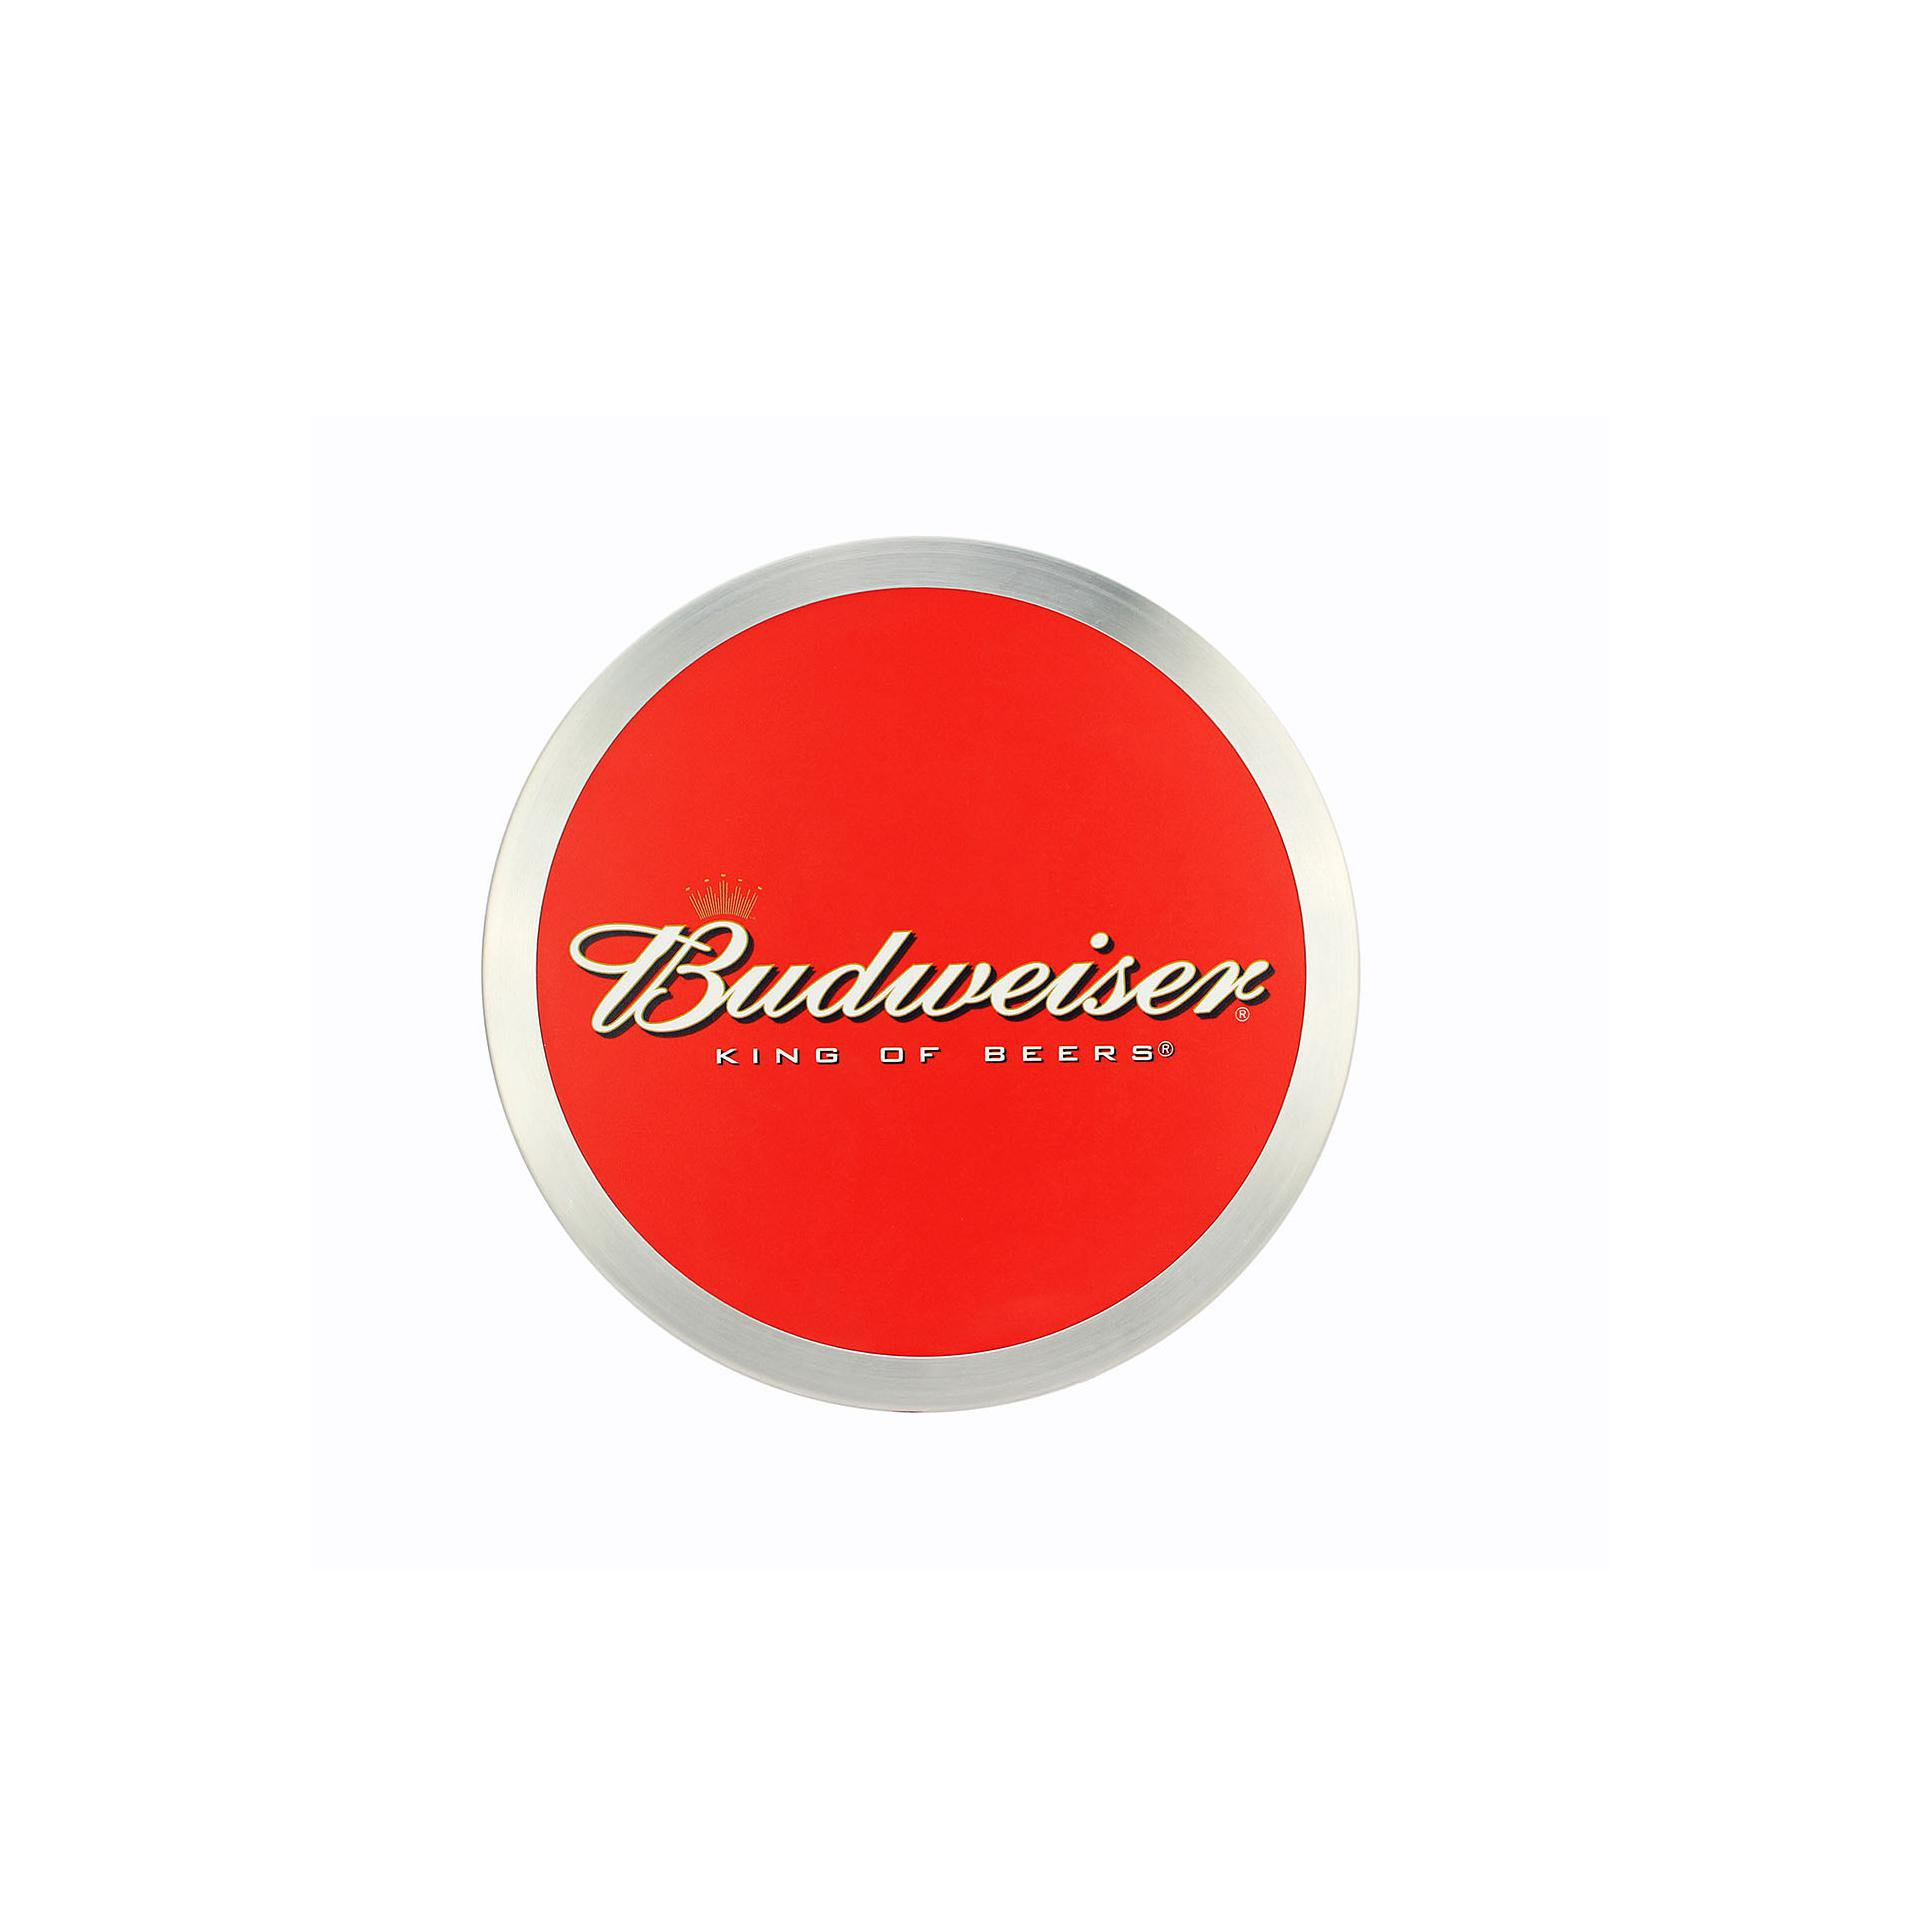 Luminoso Decorativo - Budweiser Vermelho - 31 Cm - Bar Light